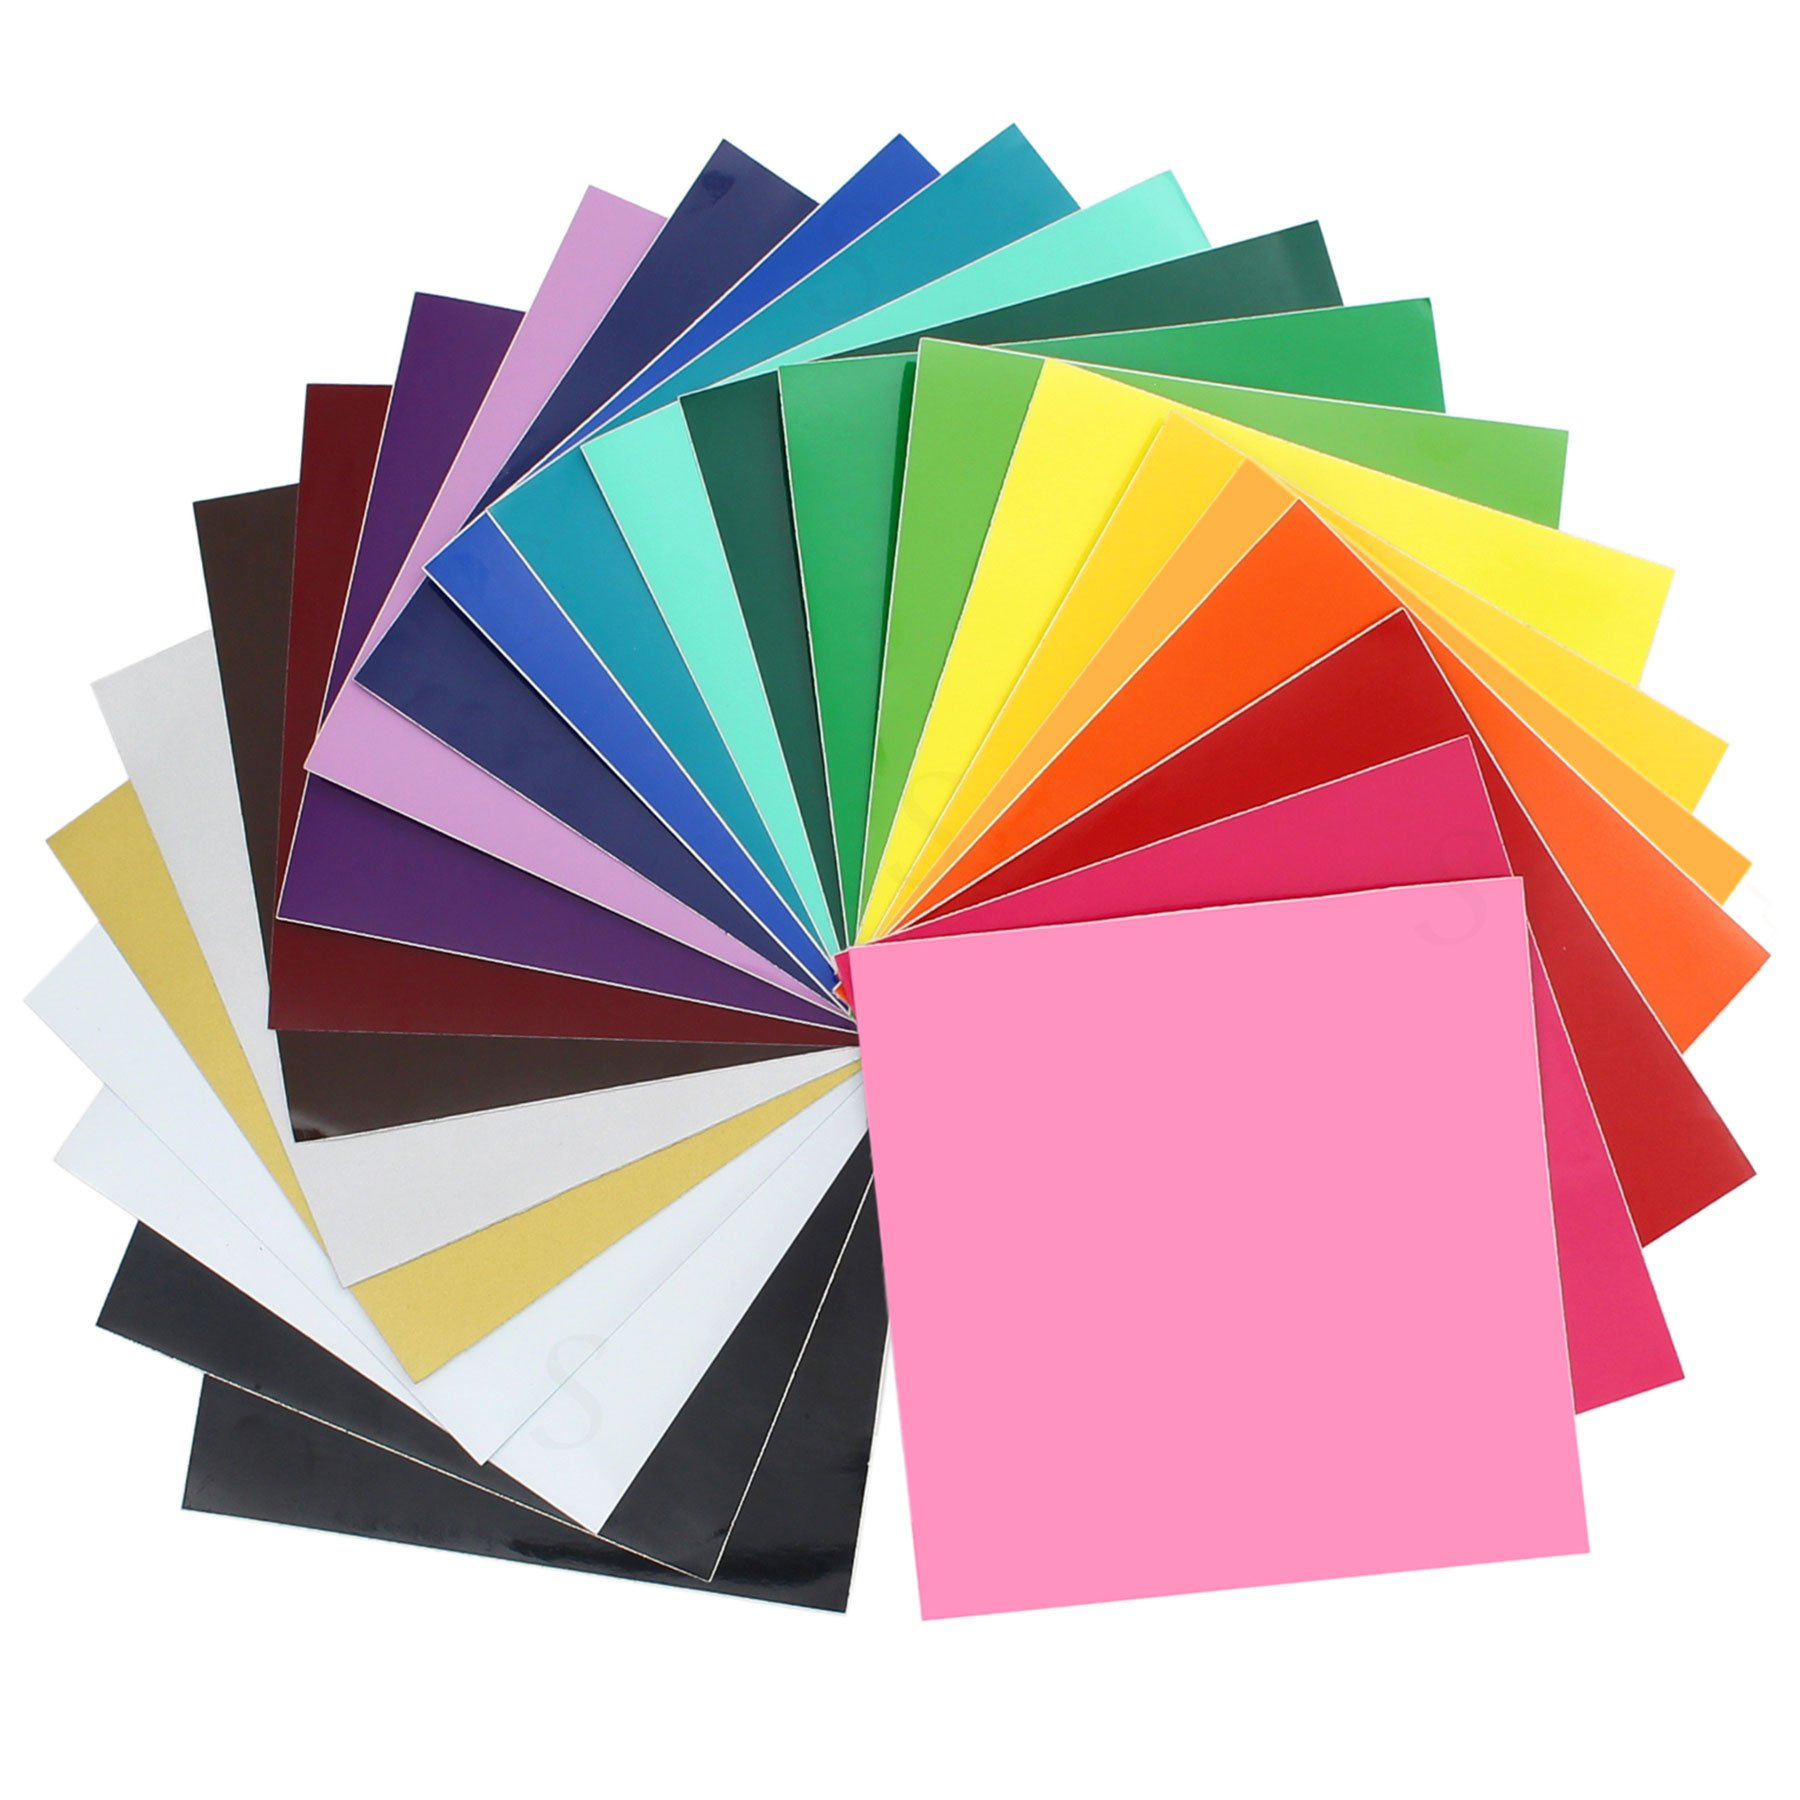 "ORACAL 651 Glossy Vinyl - 24 Pack of Top Colors - 12"" x 12\"" Sheets"